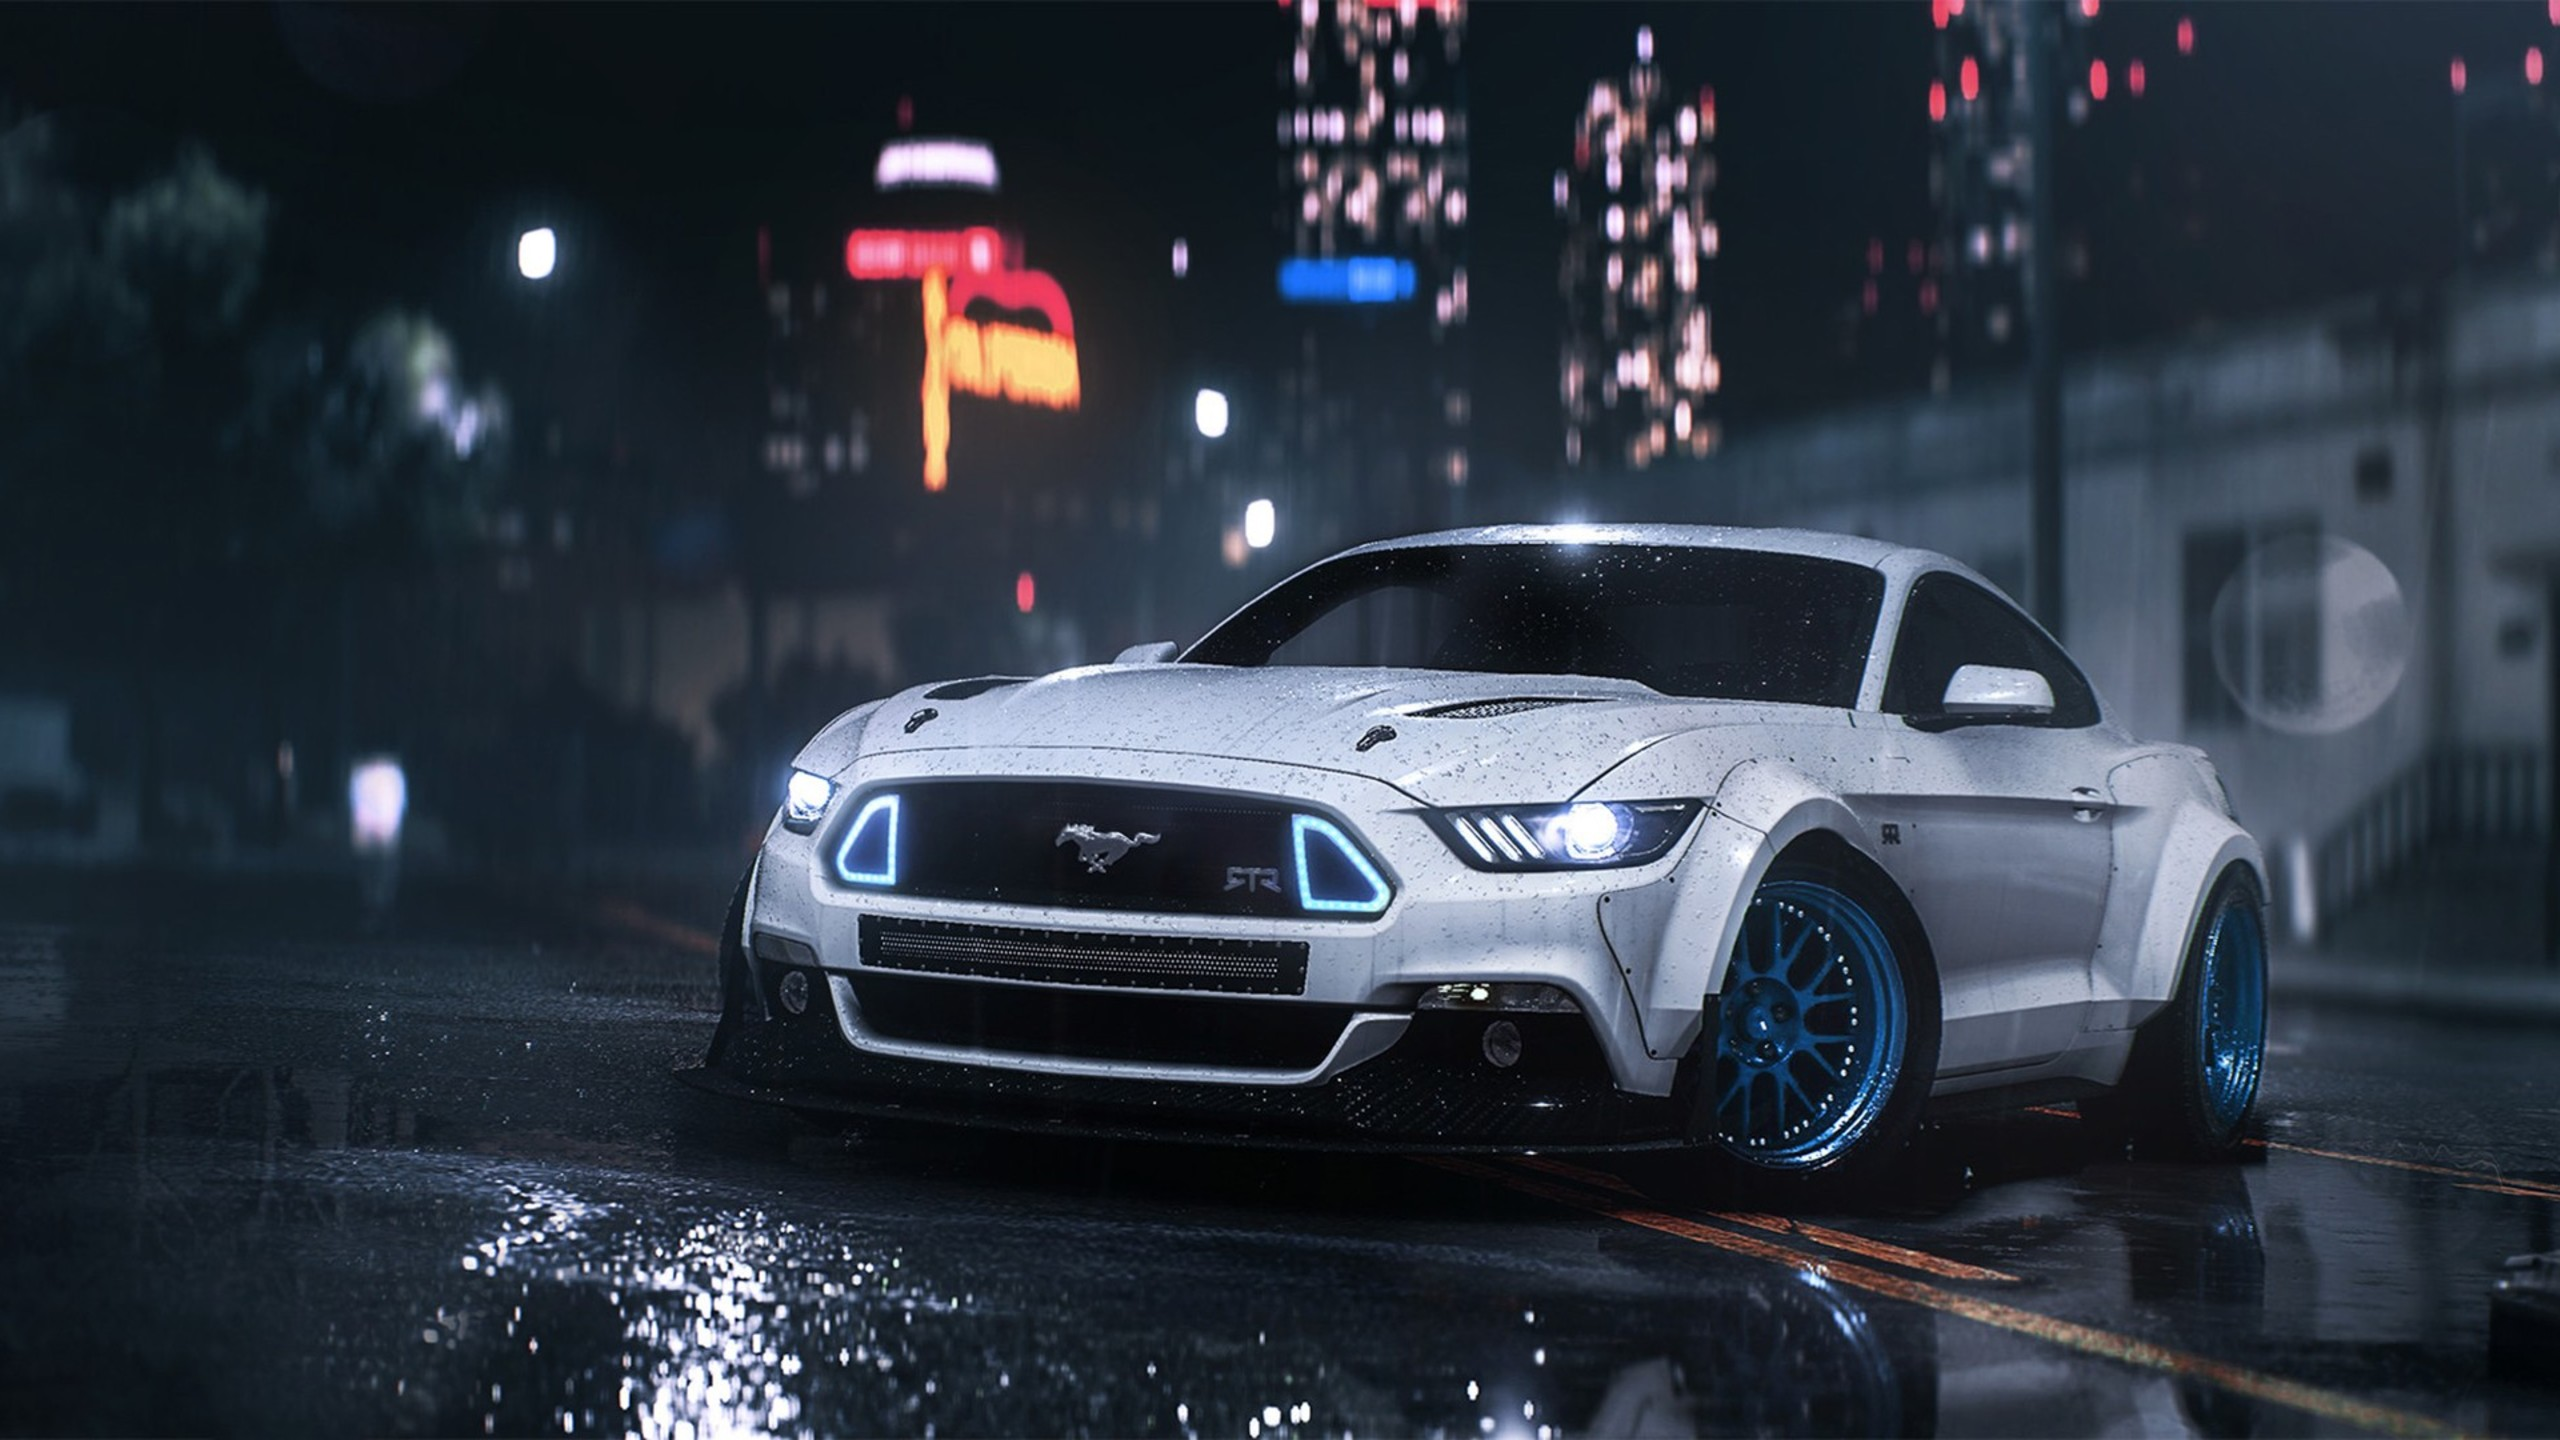 Free Download Need For Speed Payback Hd Wallpaper Background Image